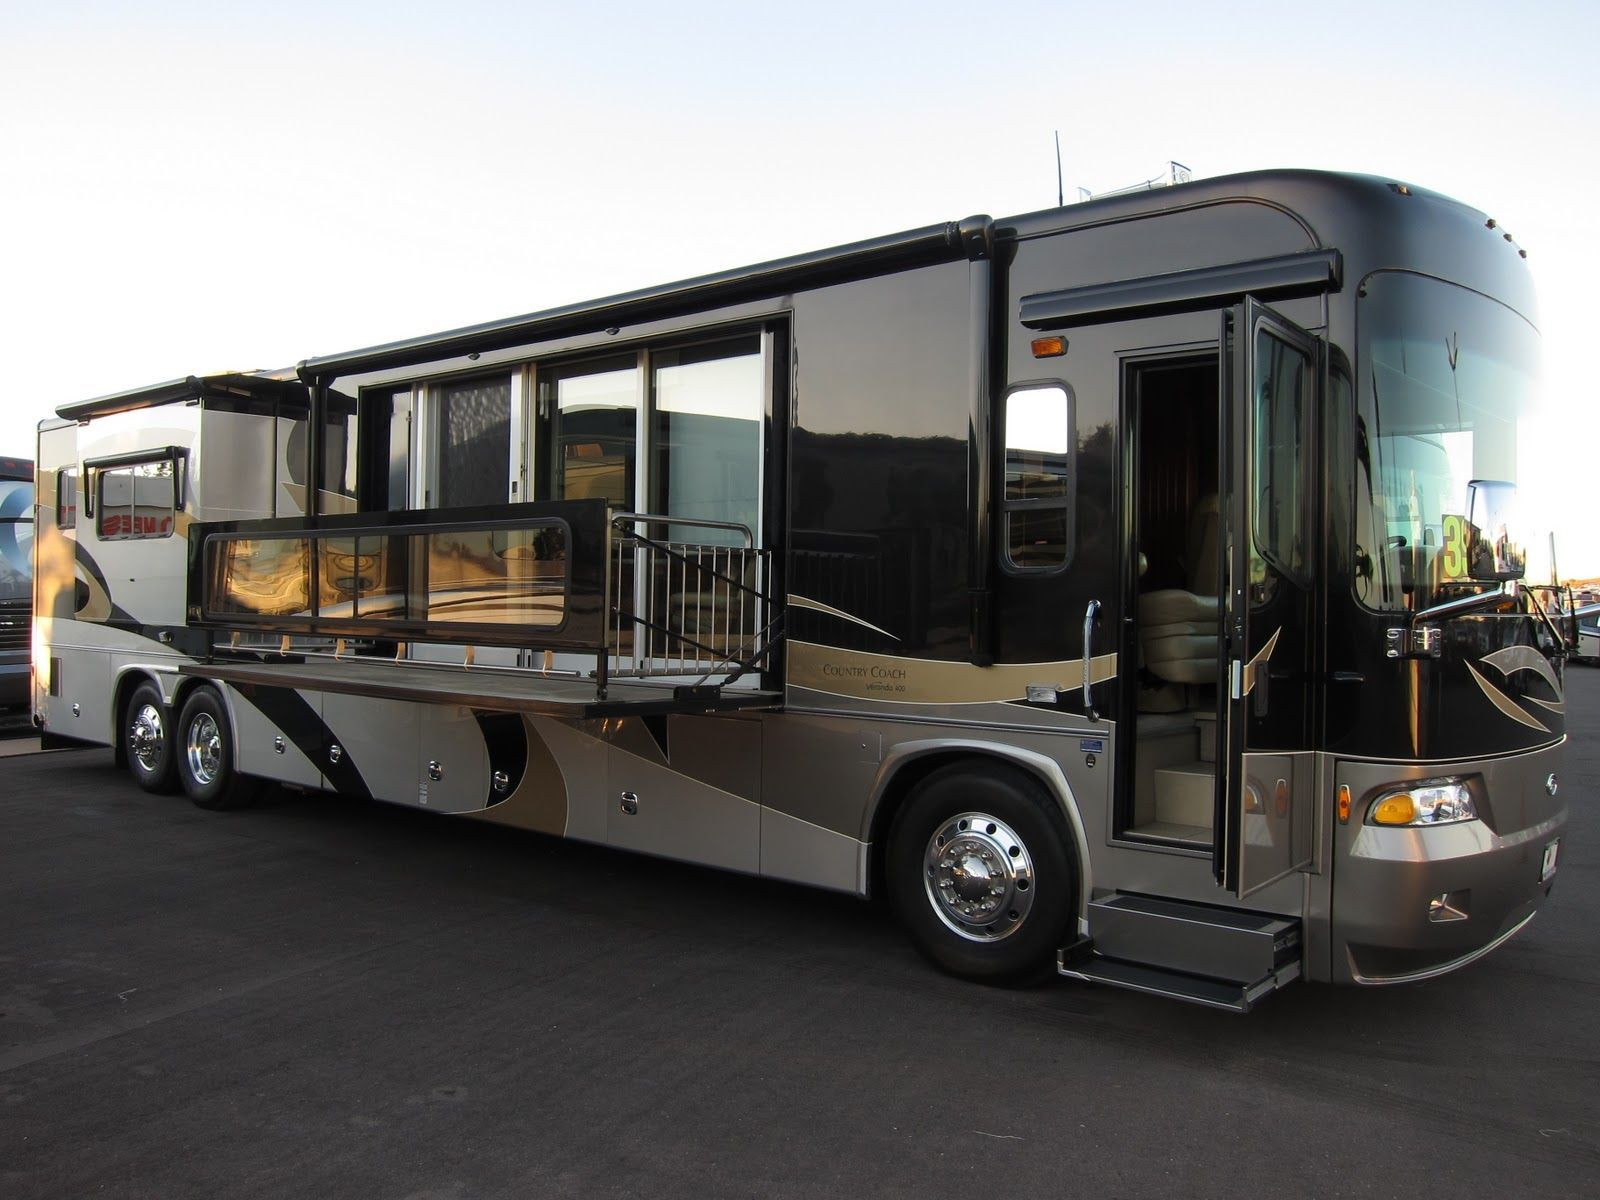 Rv Photos And Pictures Just Noticed That The Rv Consumer Group Has Used A Born Free As